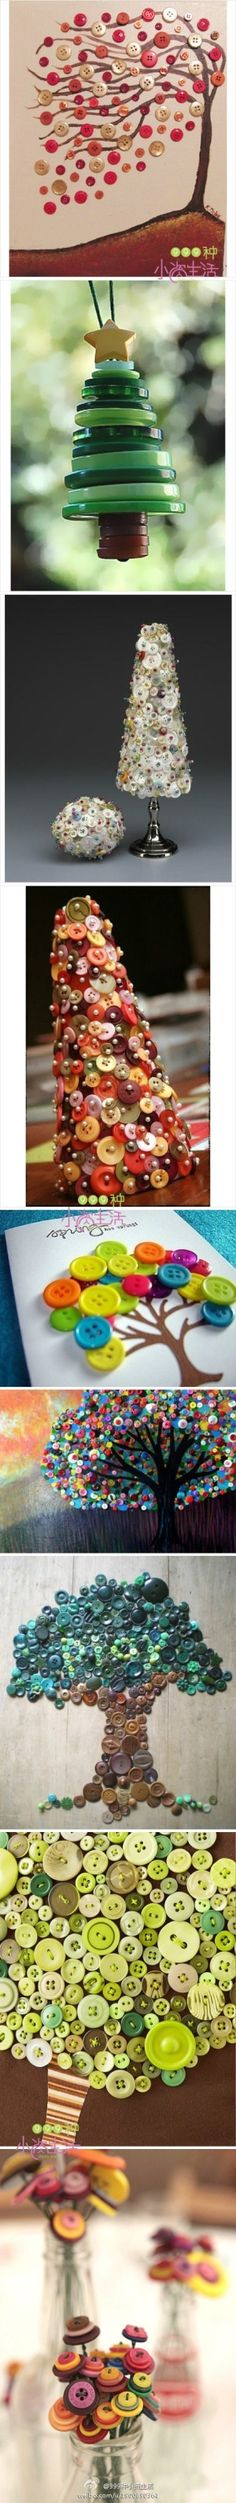 Cute crafts using buttons!